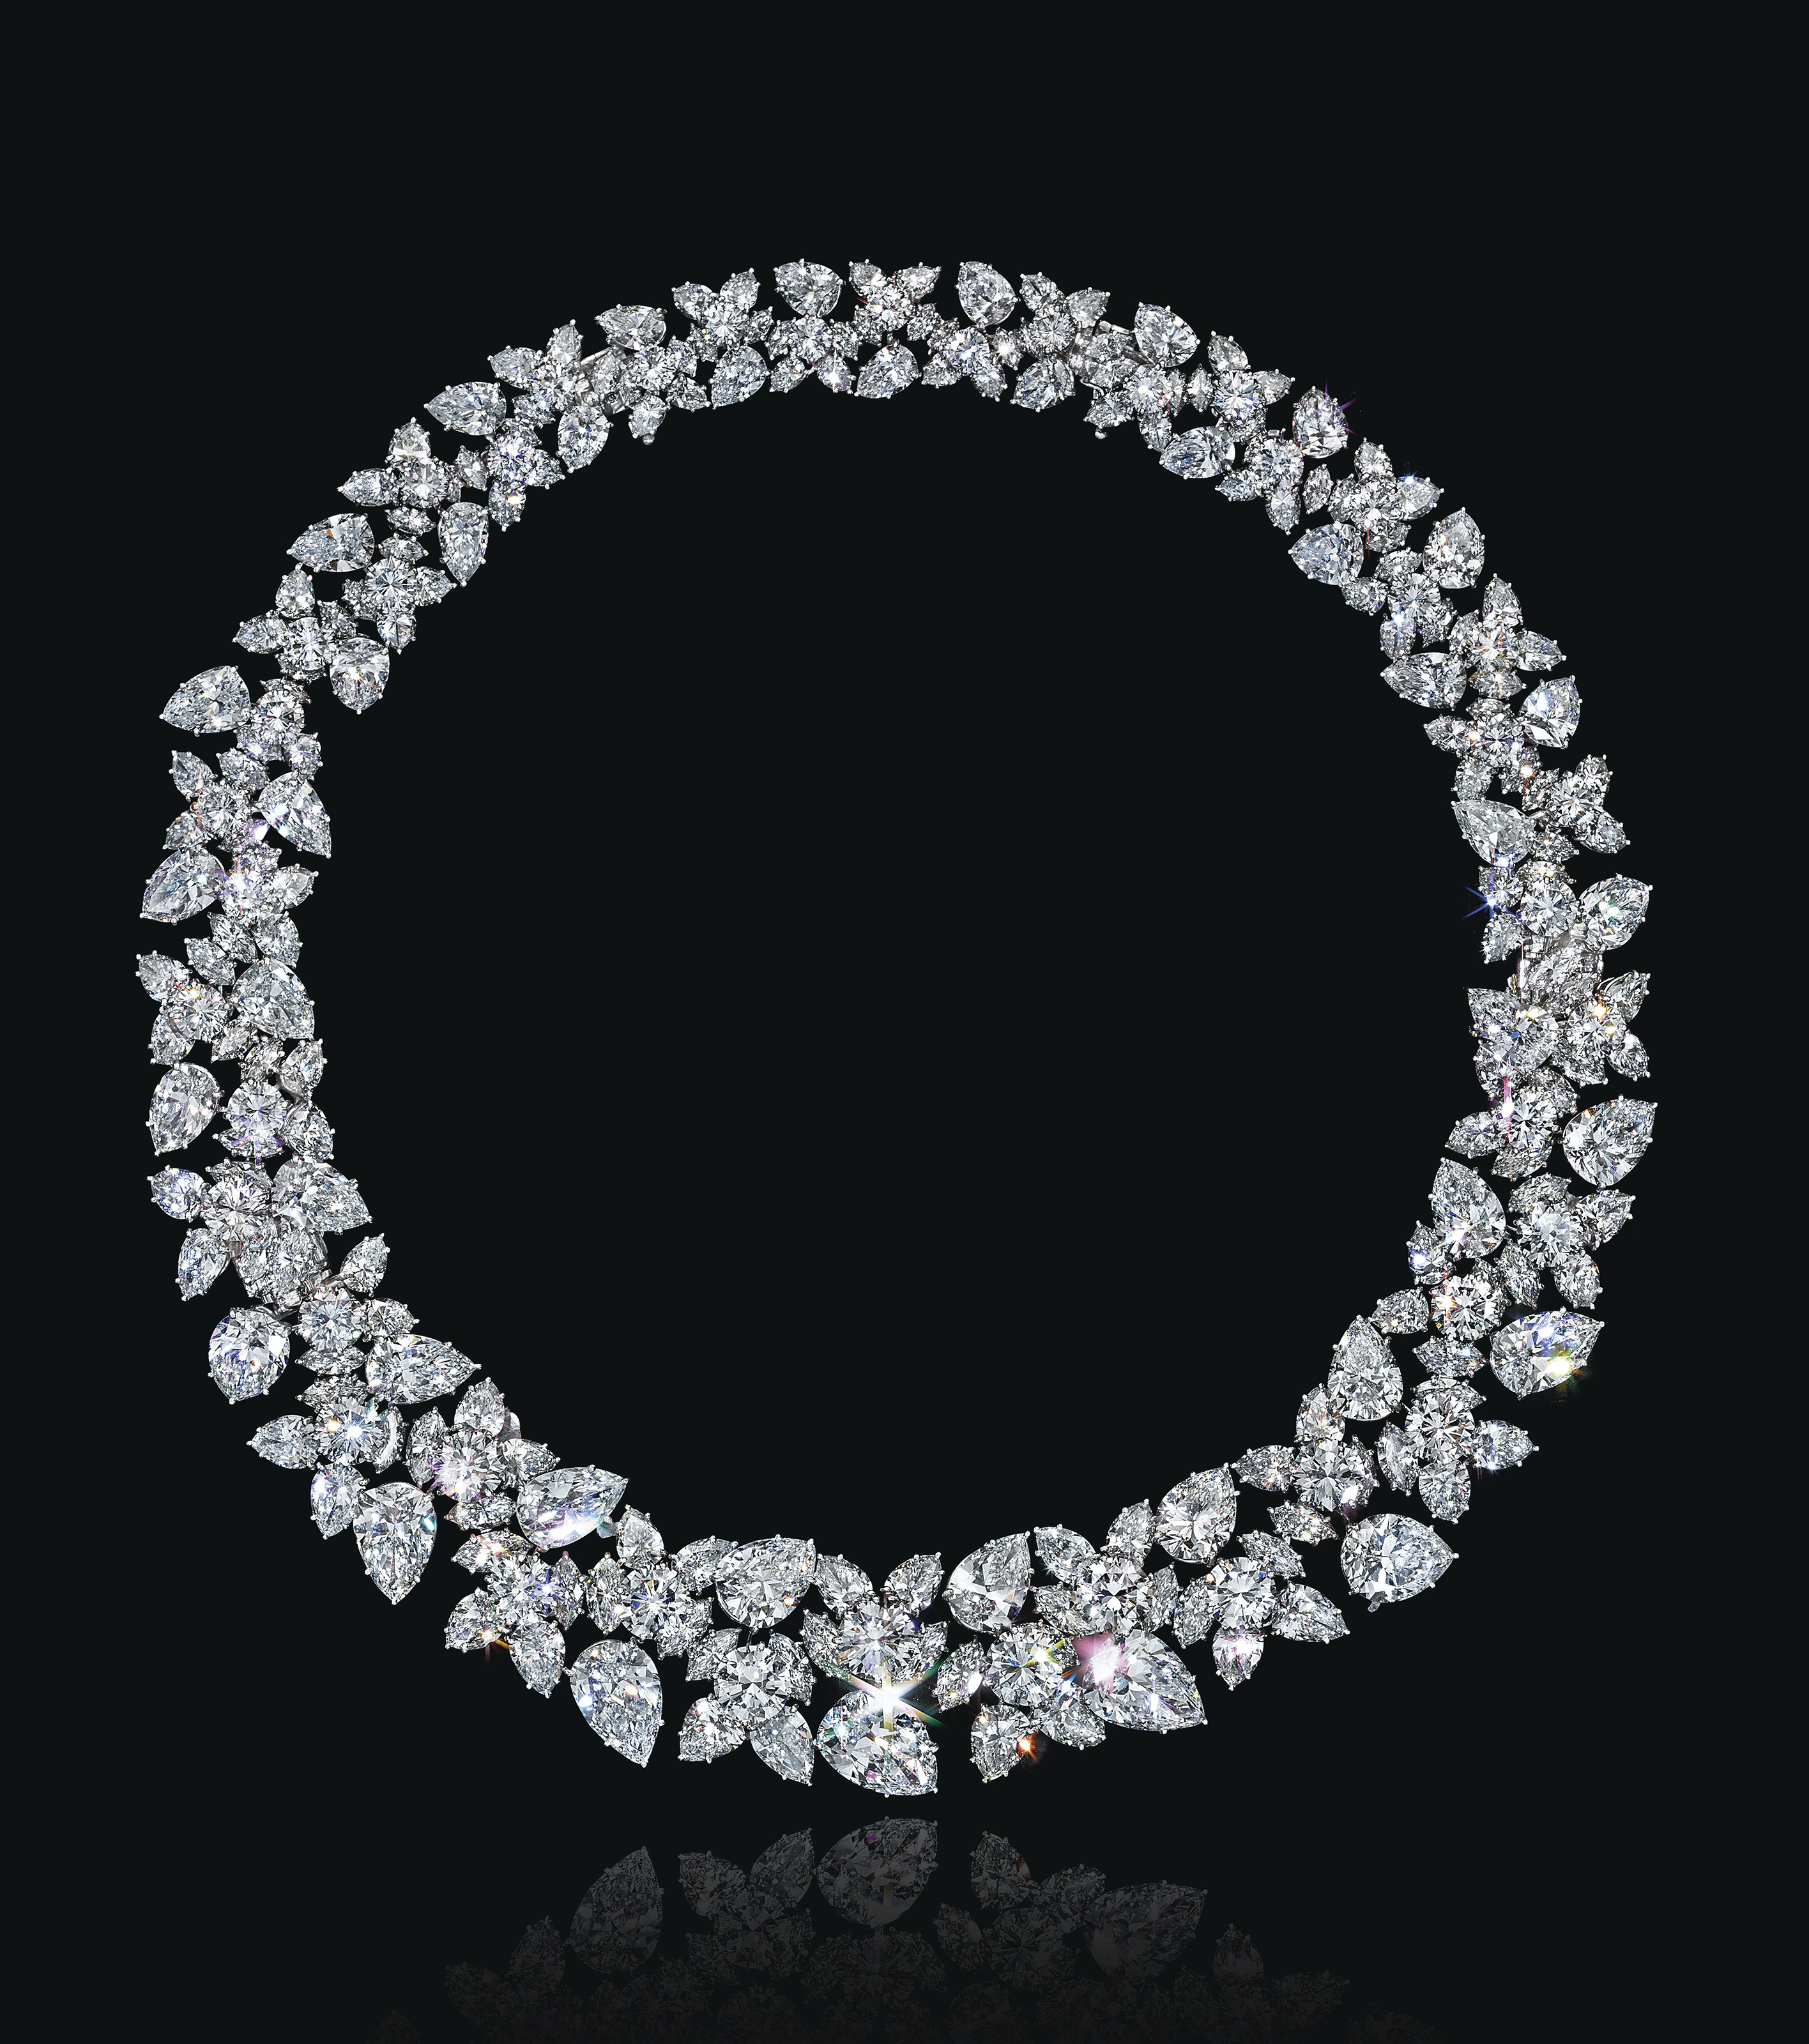 A DIAMOND CLUSTER NECKLACE, BY HARRY WINSTON AND A PHOTOGRAPH, BY CECIL BEATON